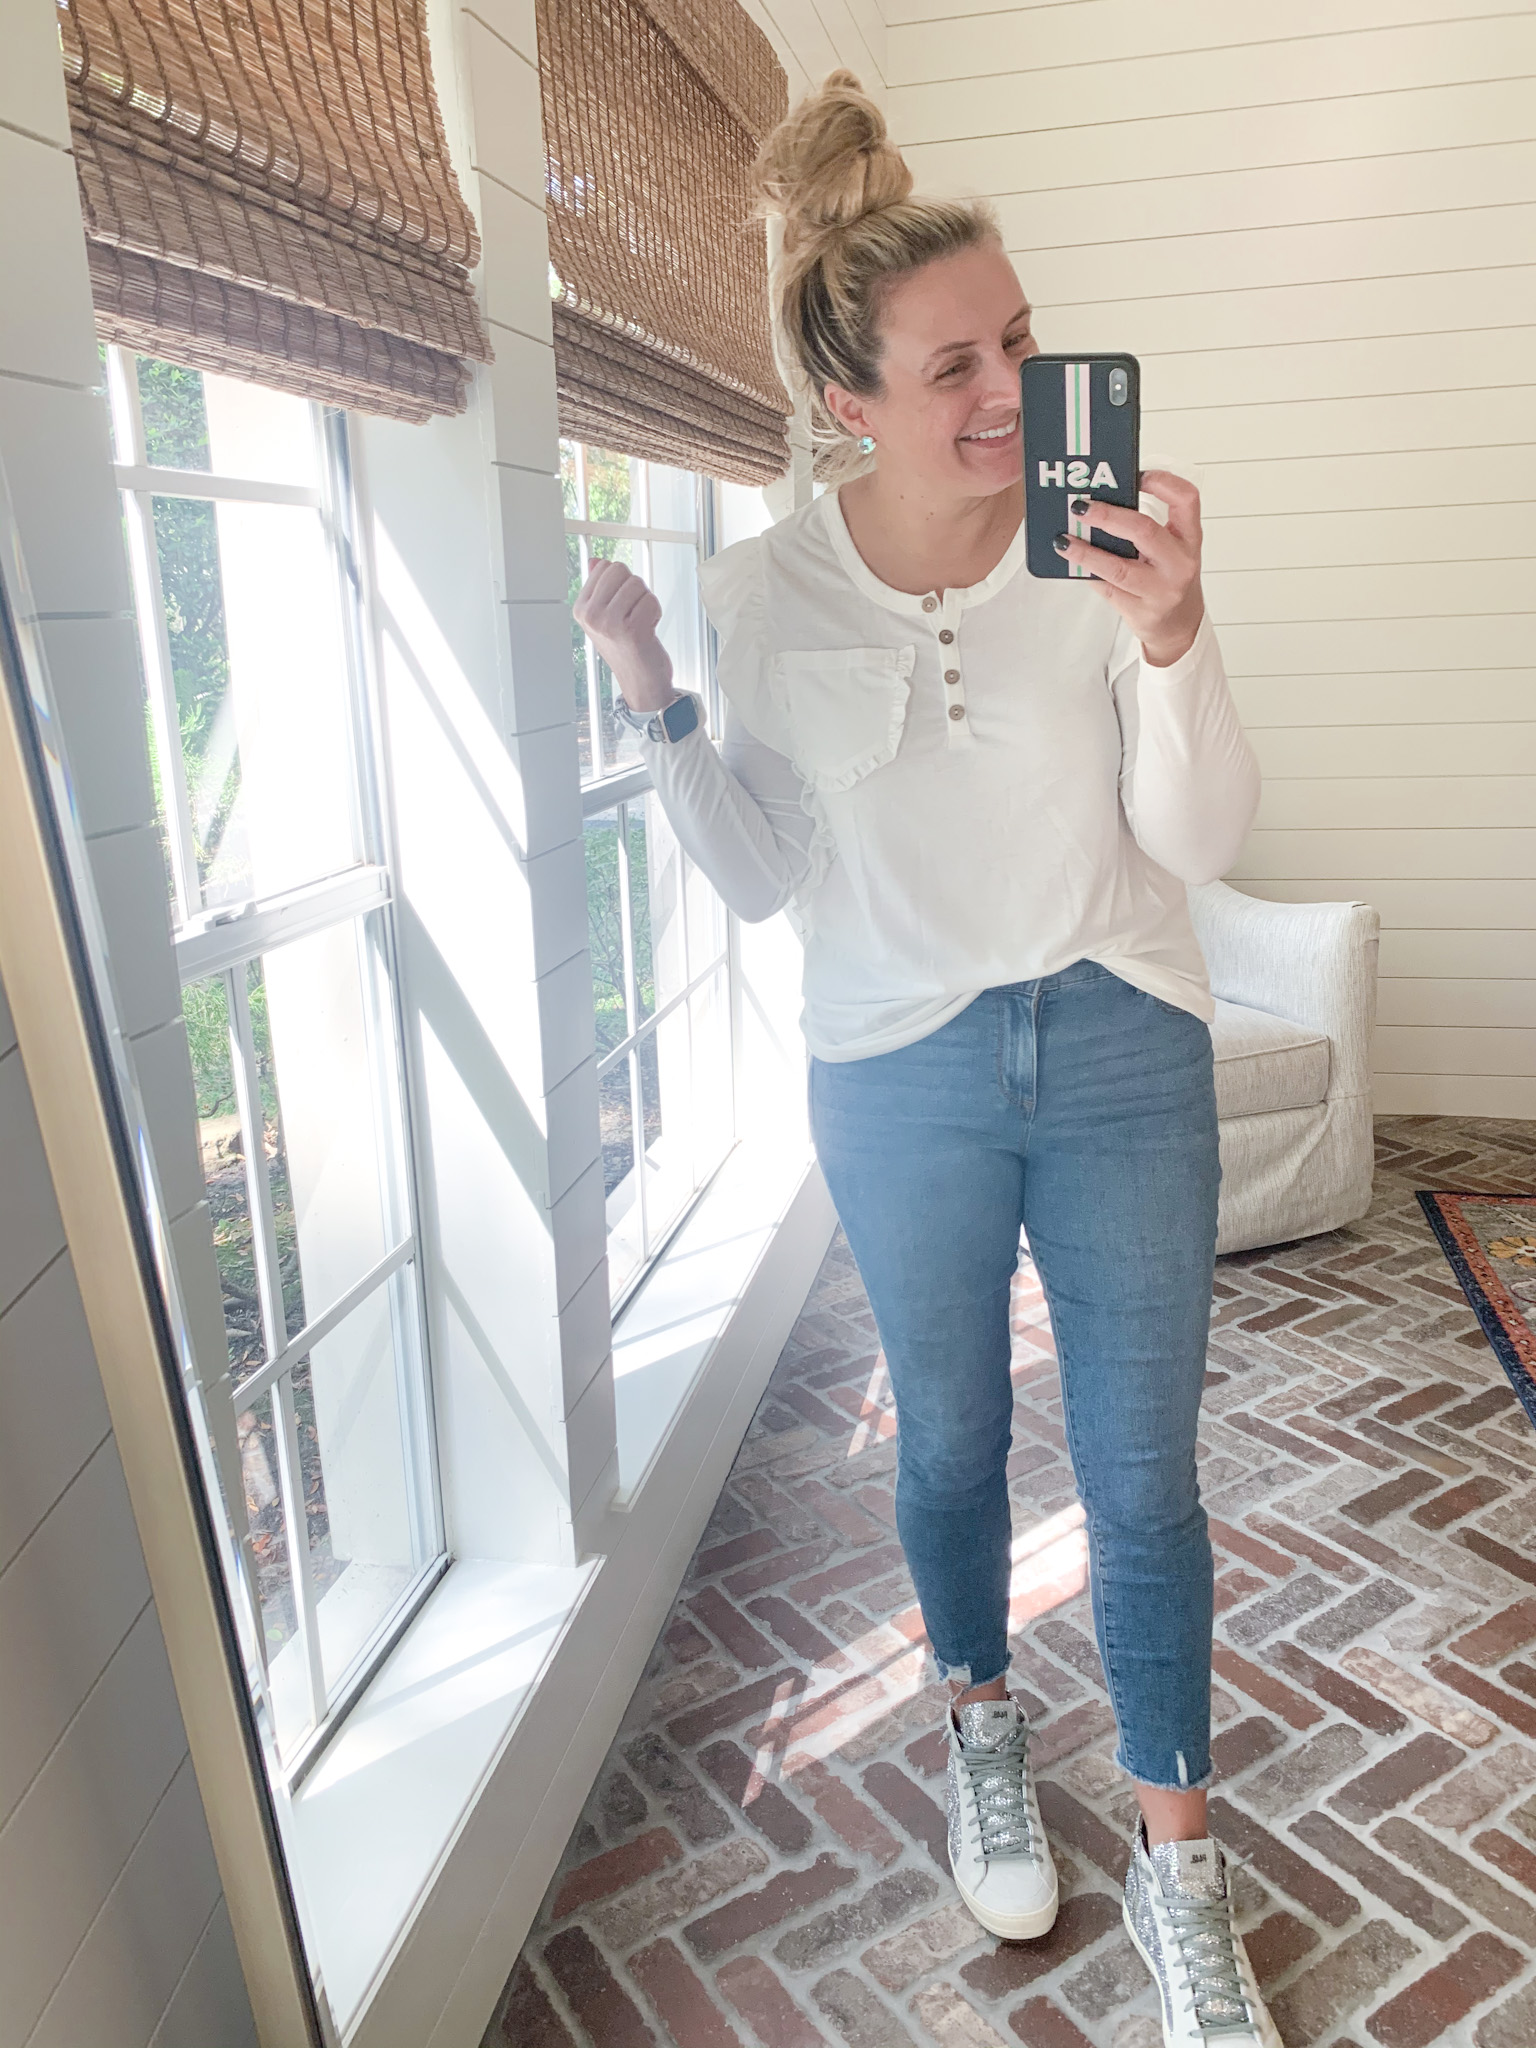 Amazon Haul by popular Houston fashion blog, Fancy Ashley: image of a woman wearing a Amazon GAMISOTE Womens Color Block Long Sleeve T Shirt, Walmart Sofia Jeans Rosa Curvy Ripped Hem High Waist Ankle Jean, and Nordstrom P448 Skate Glitter High Top Sneaker.